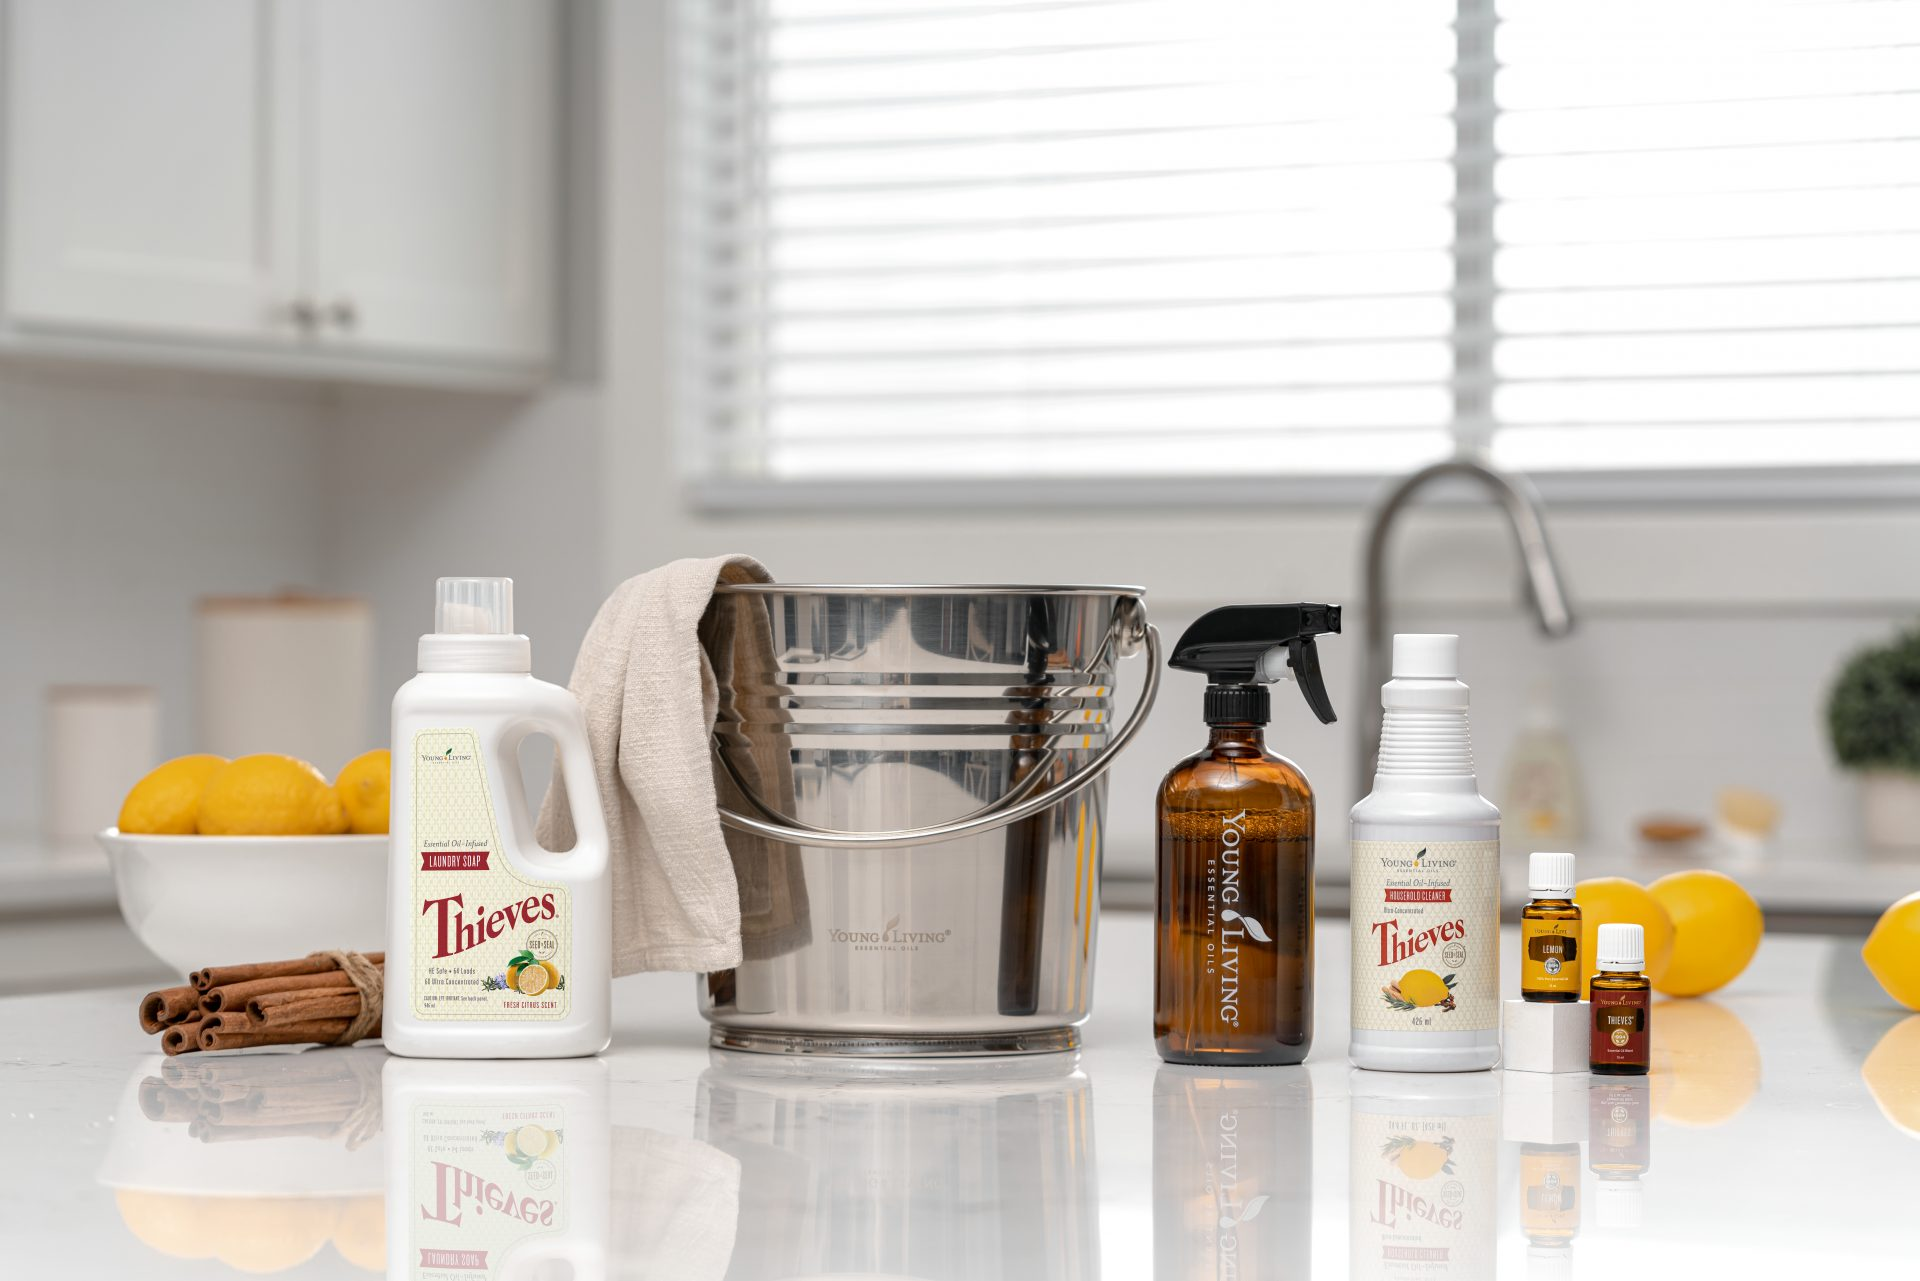 Thieves Household cleaner and cleaning products in kitchen